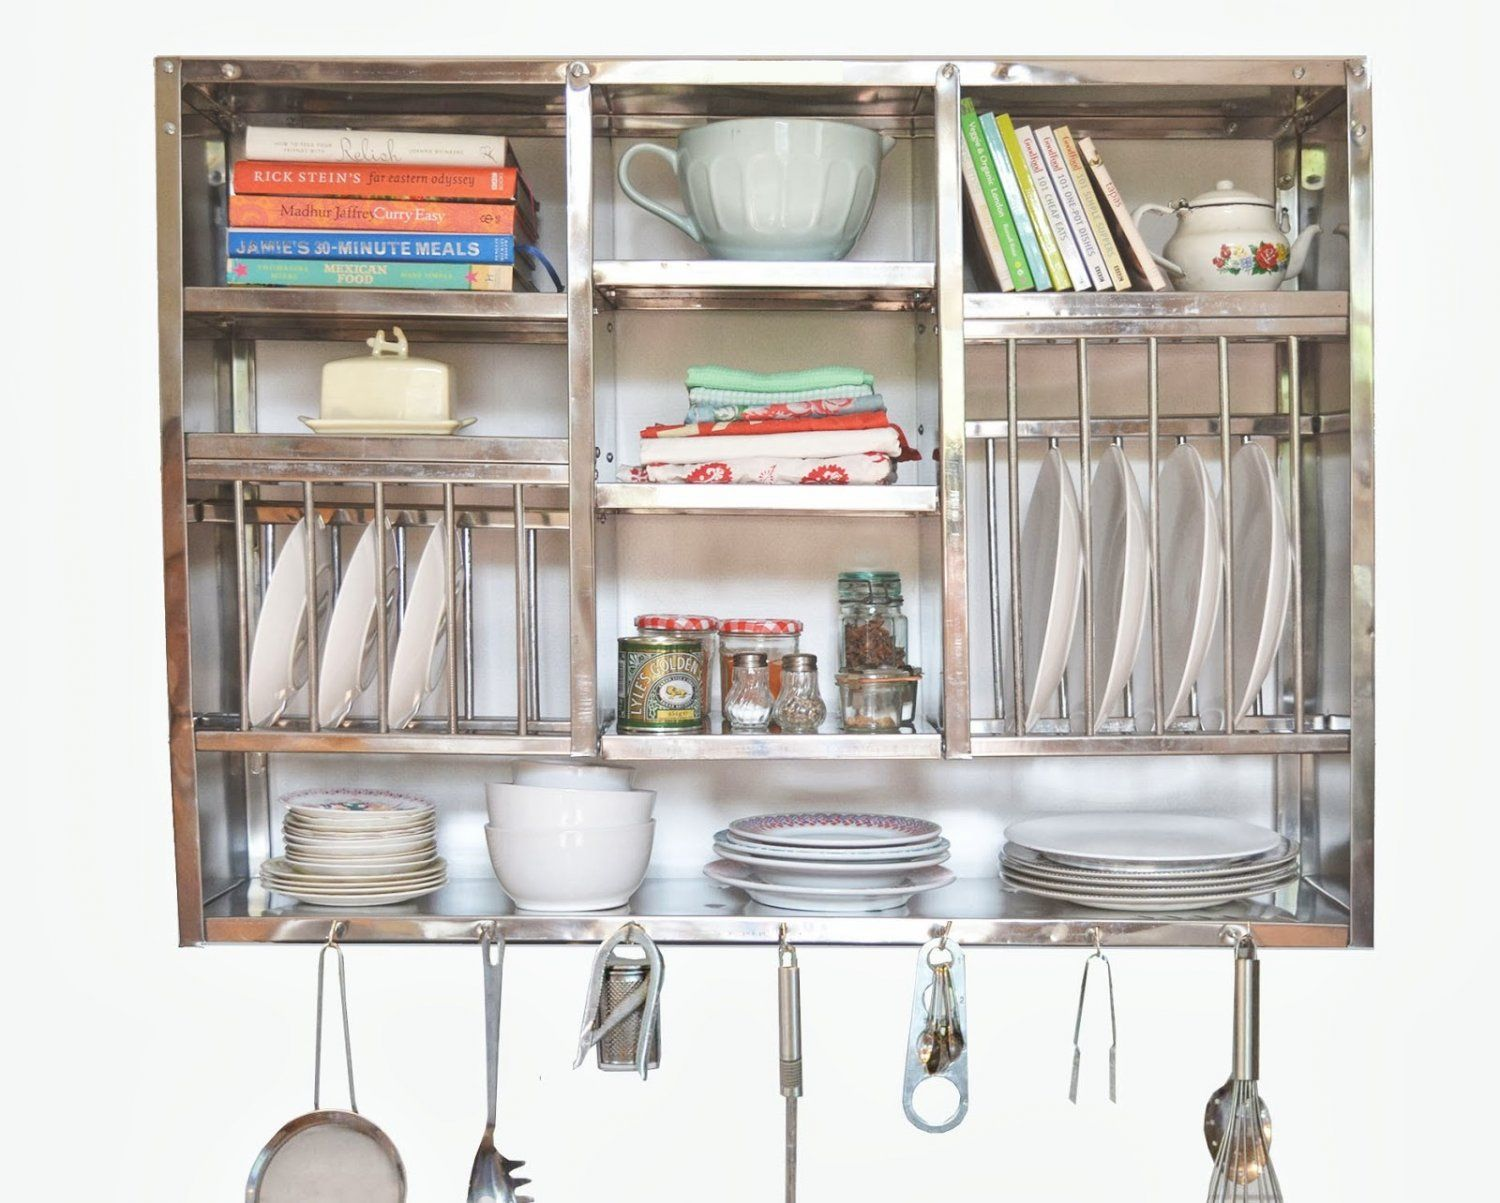 Stainless Steel Kitchen Plate Rack Wall Hanging 76x24x107 Cm